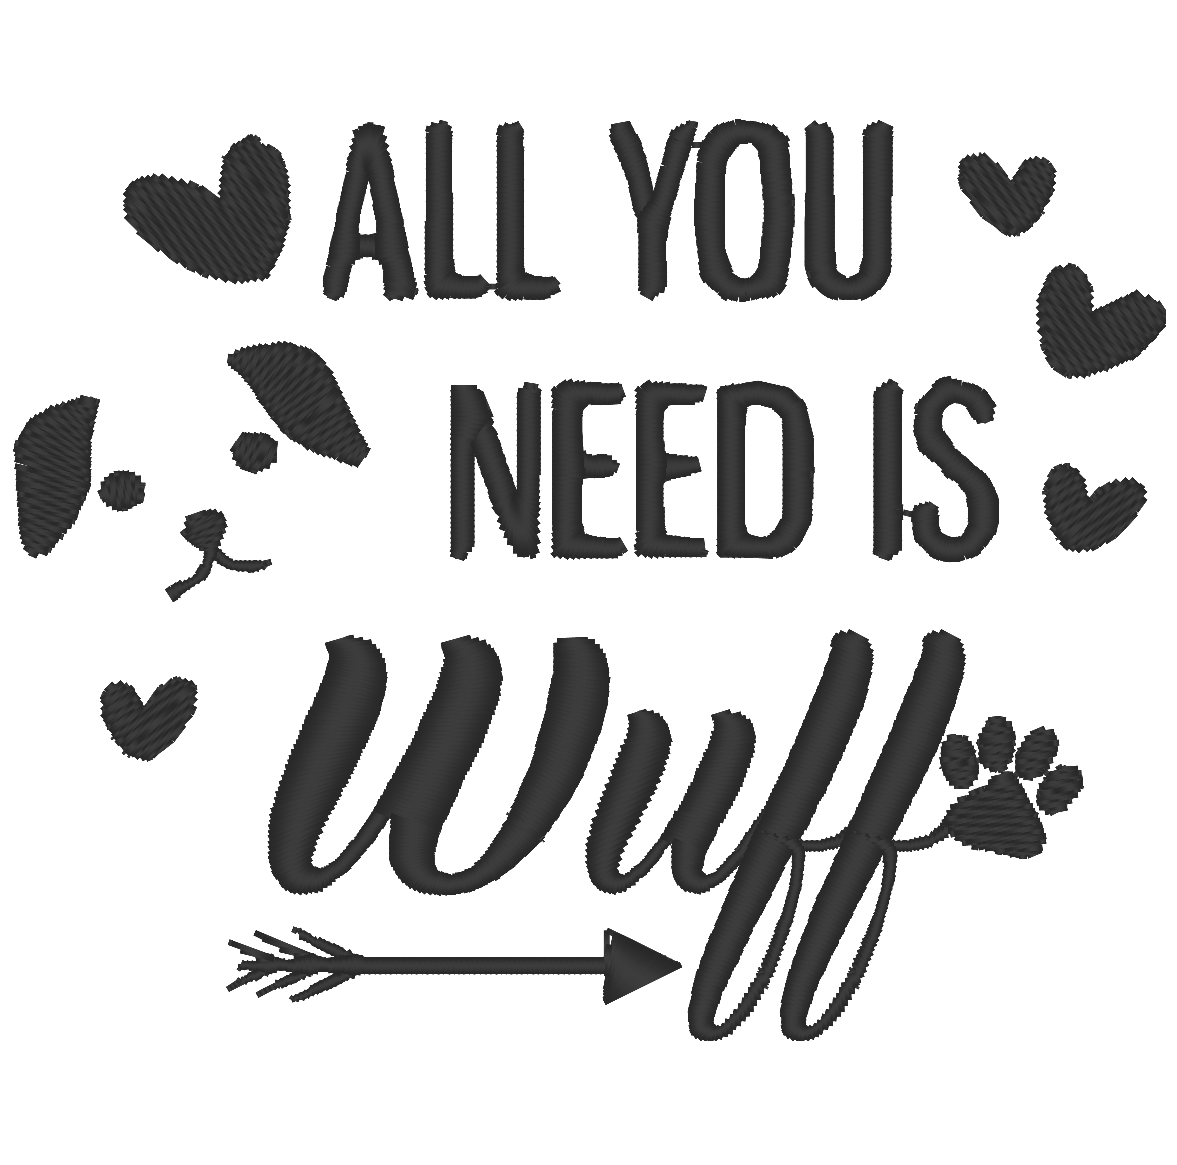 All_you_need_is_Wuff_CaValli